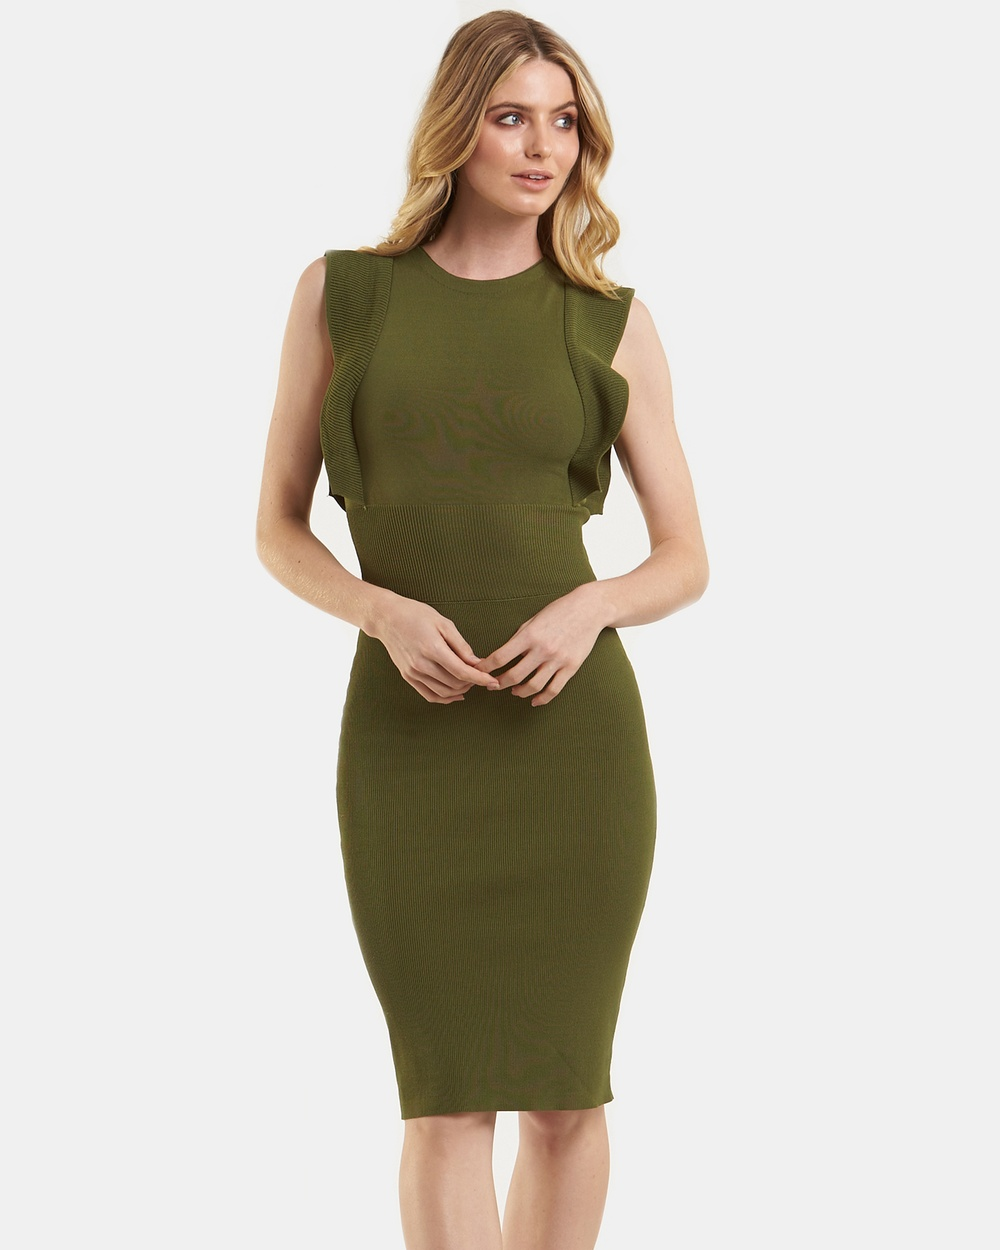 Amelius Obsessed Knit Dress Bodycon Dresses Khaki Obsessed Knit Dress